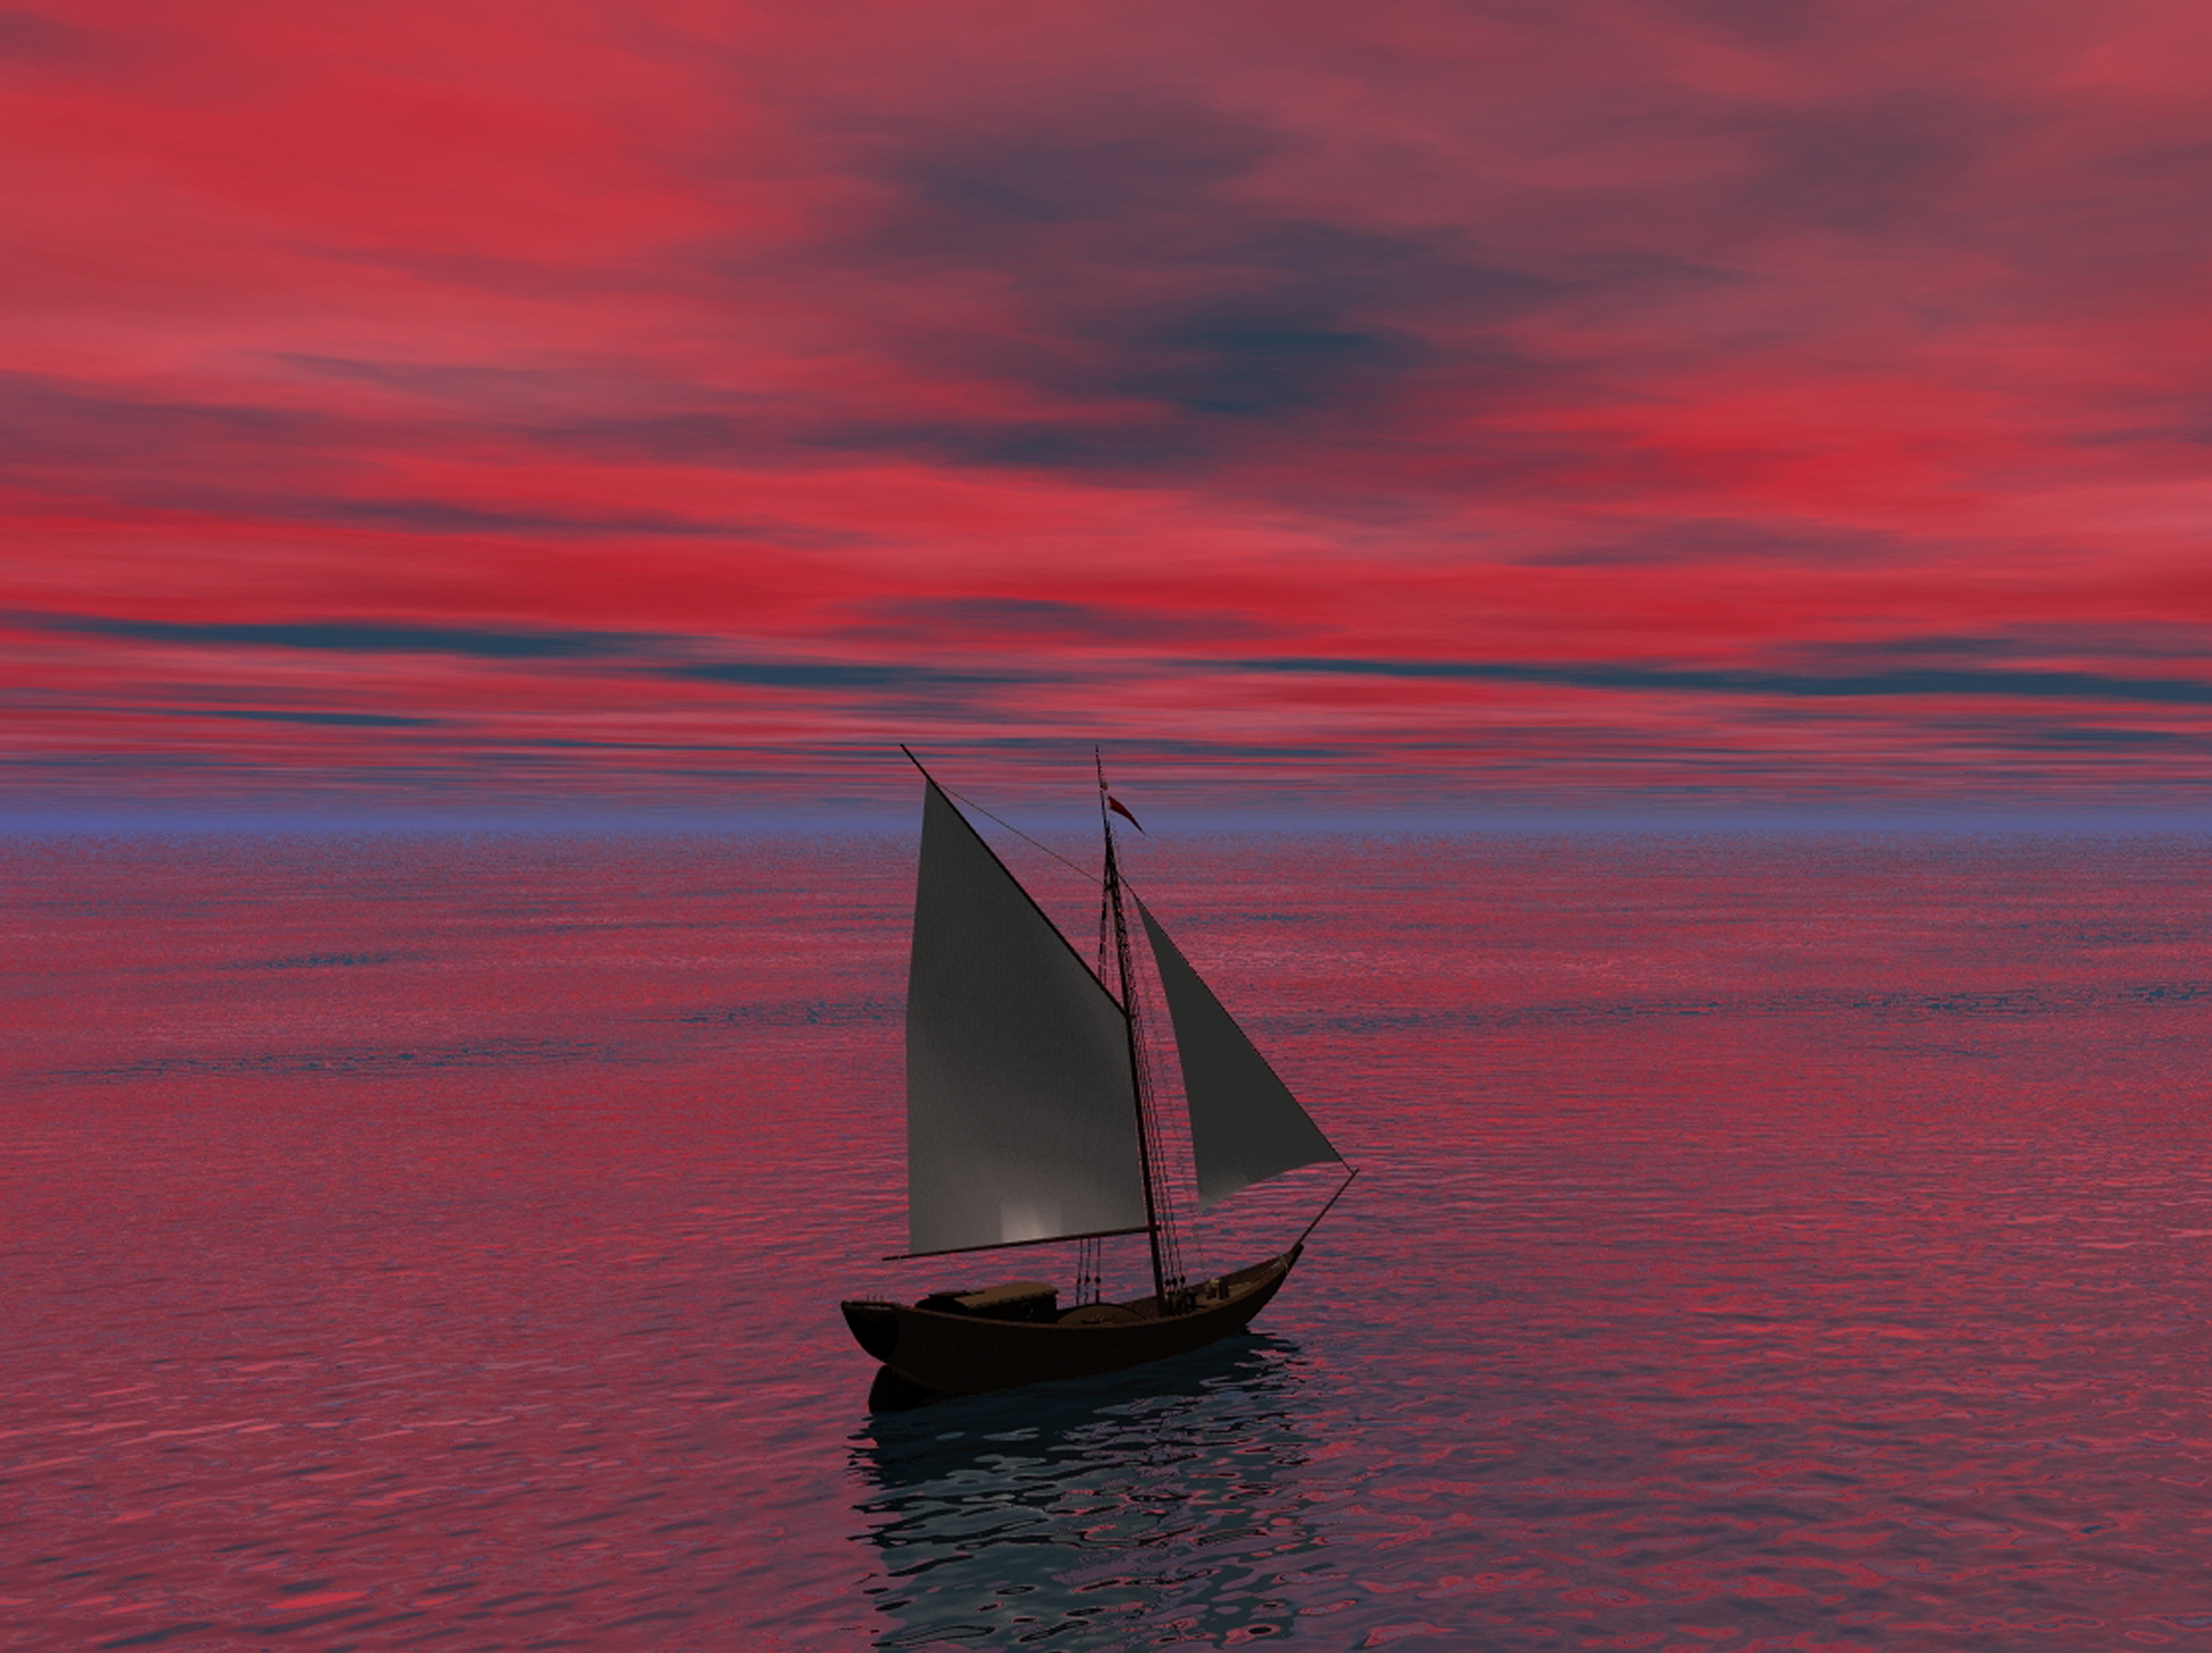 Sailing in the middle of the sea photo